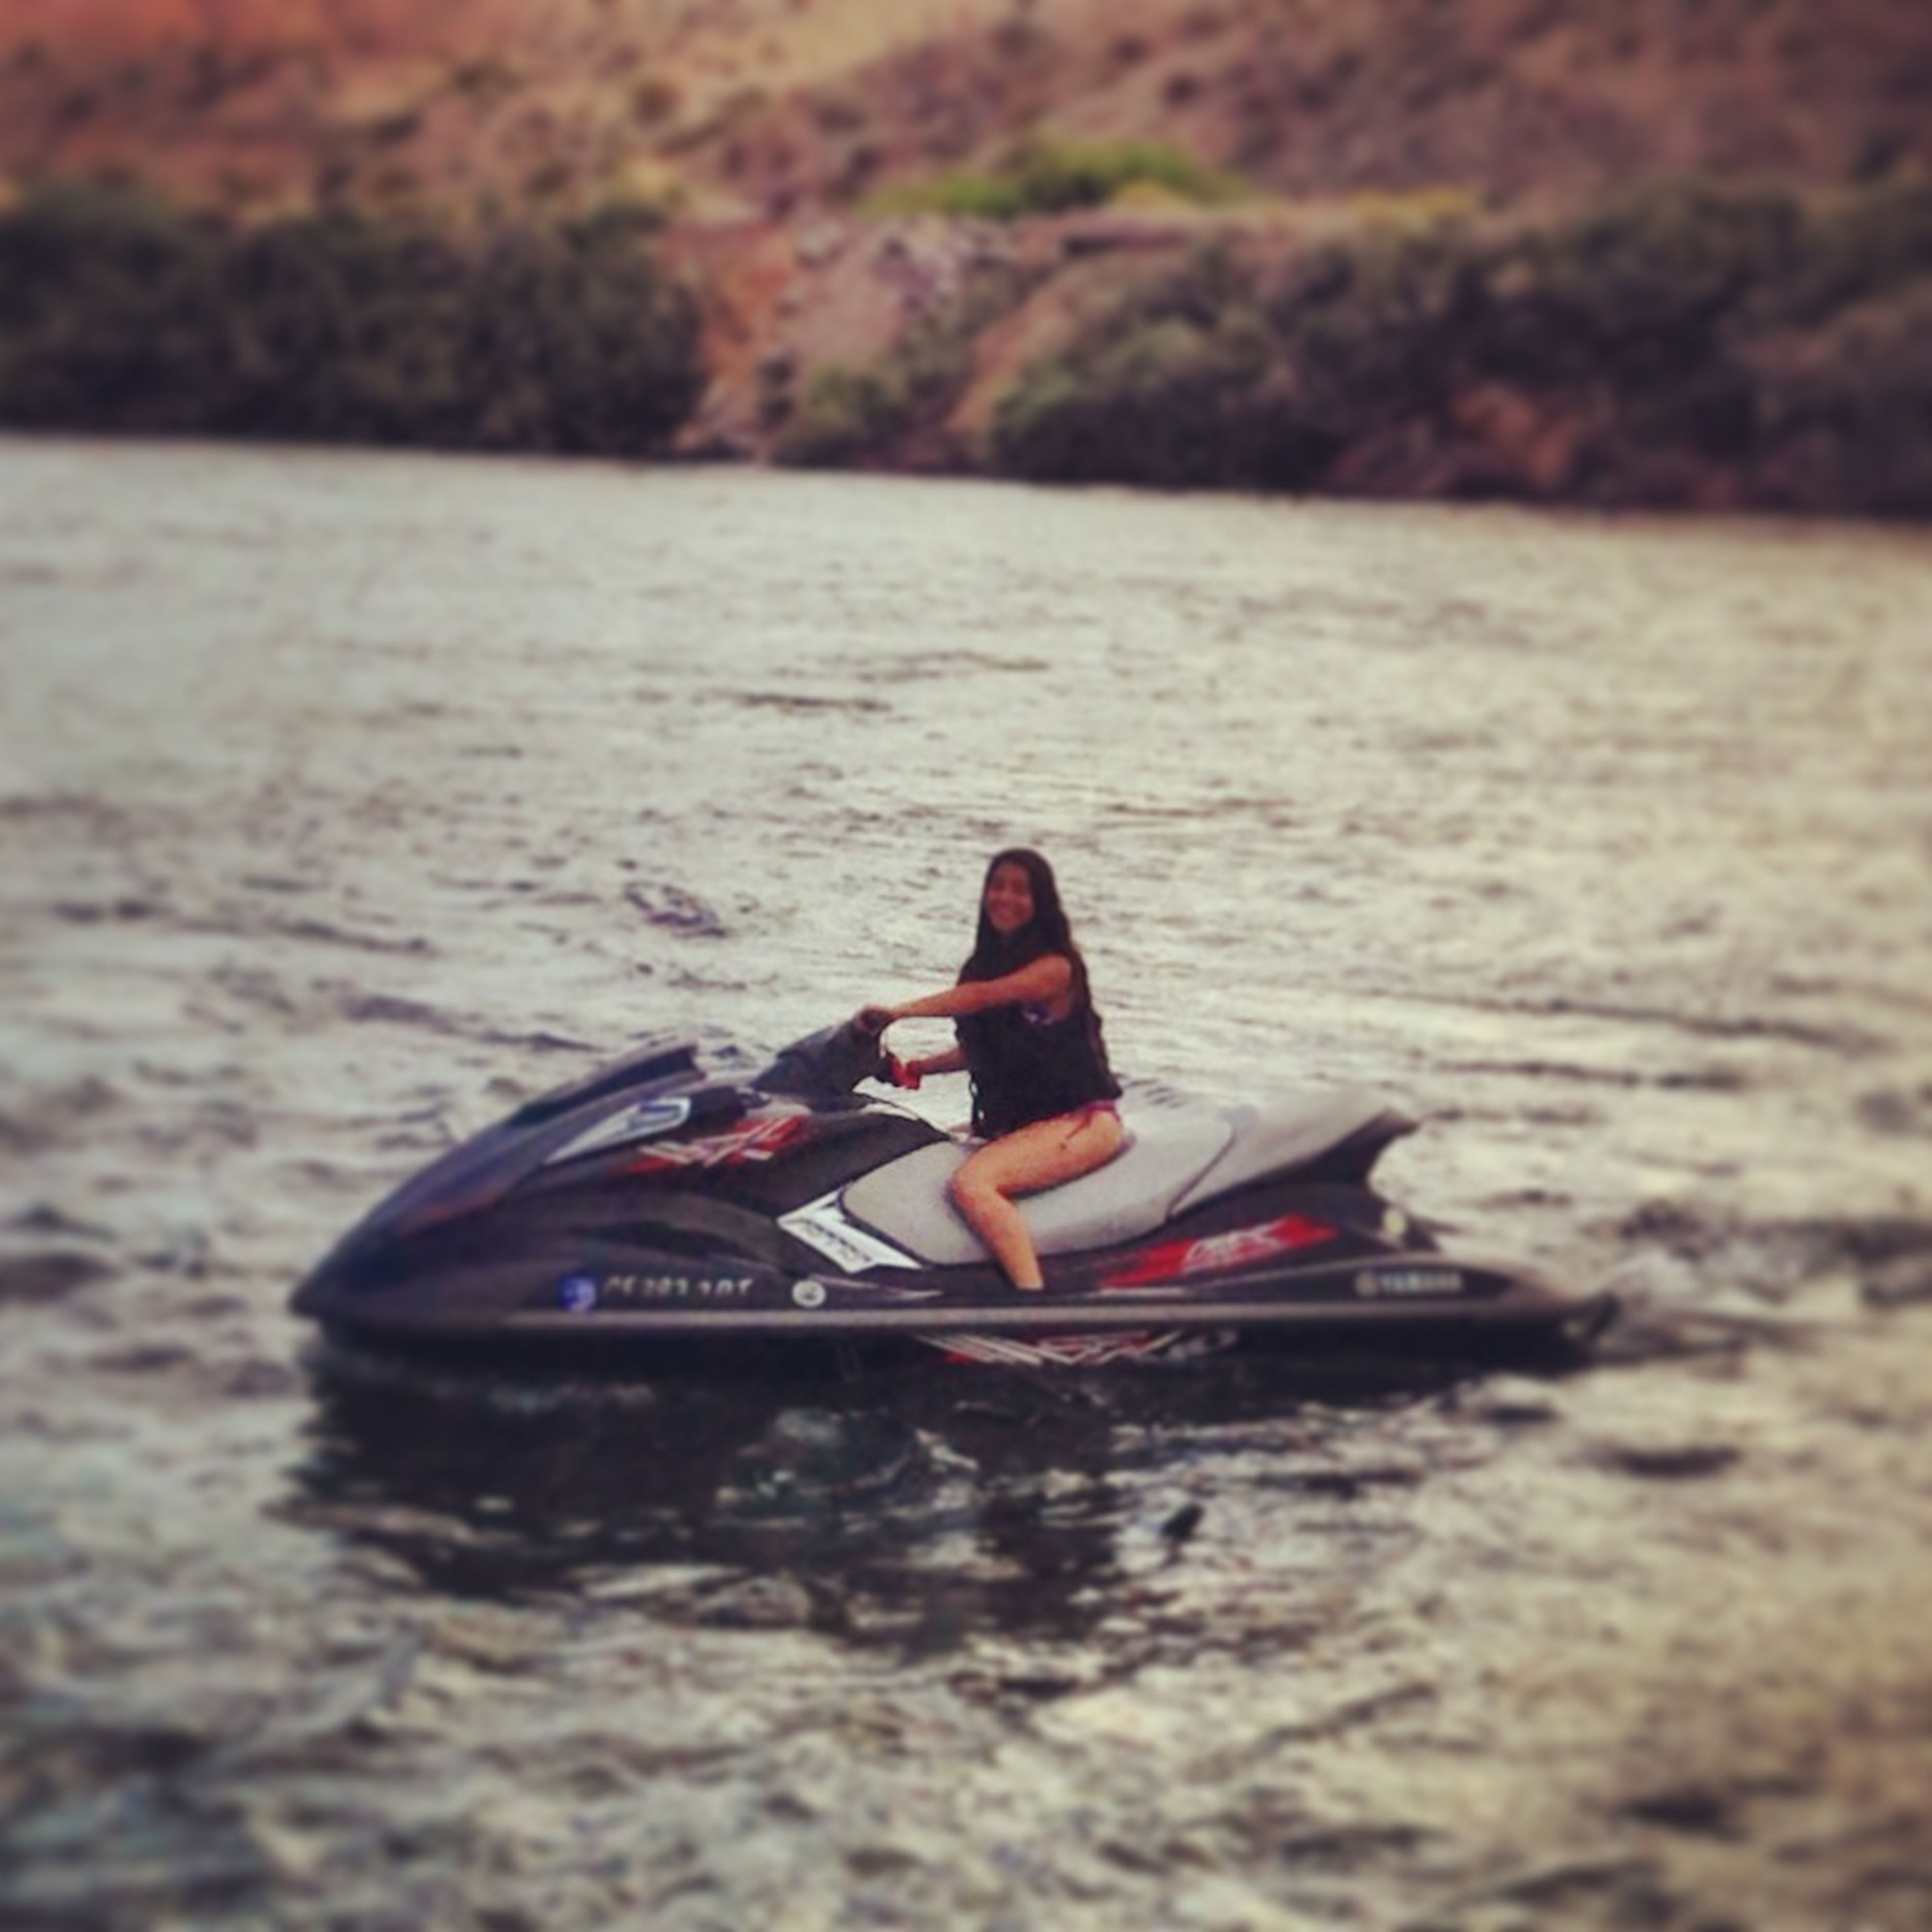 Take me baack! Summer needs to hurry tf up!